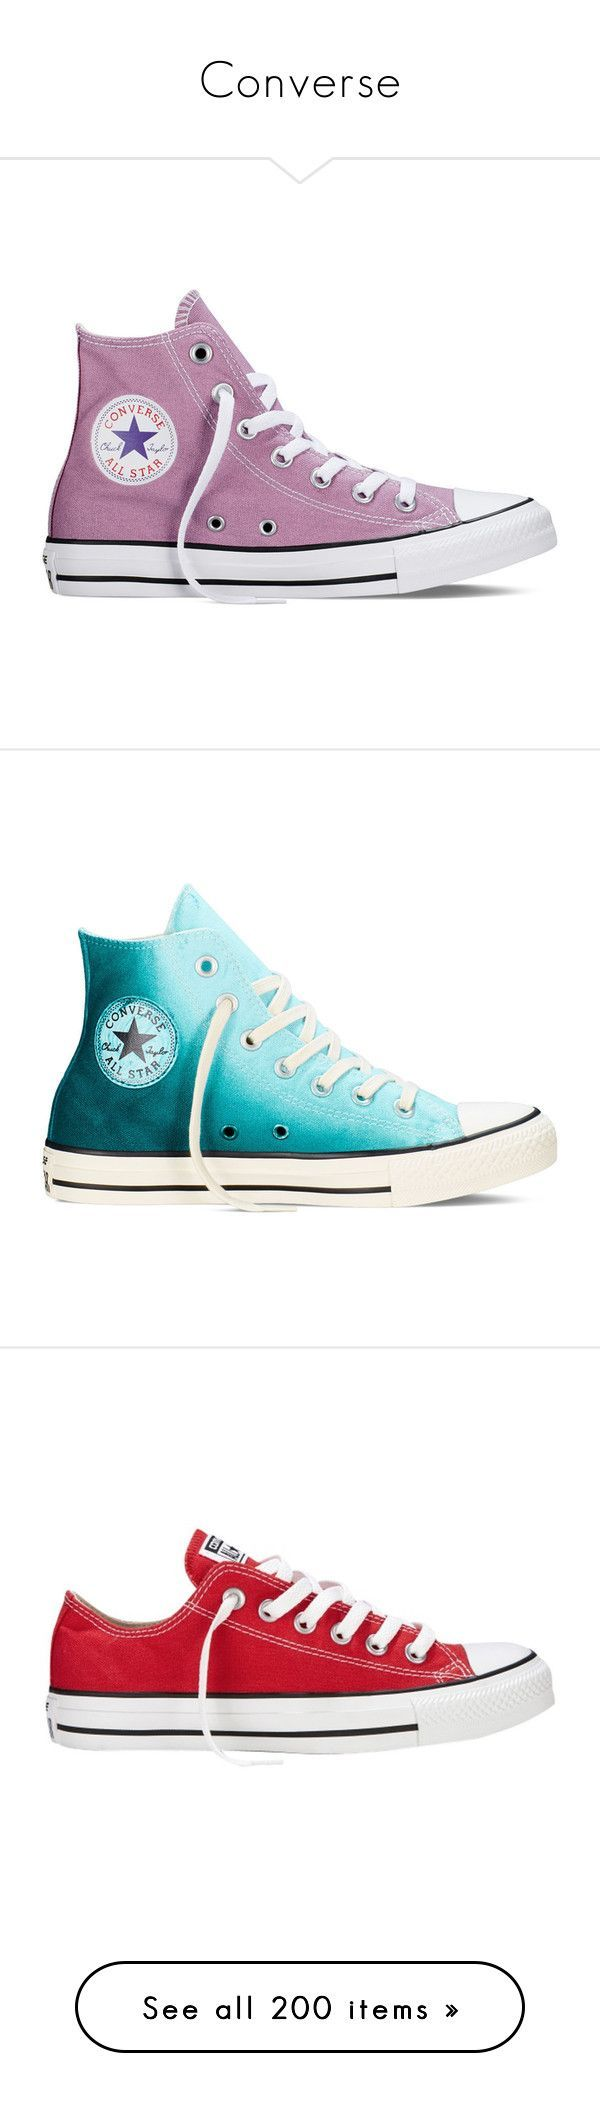 Converse by lghockey ❤ liked on Polyvore featuring shoes, sneakers, converse, powder purple, purple hi tops, converse trainers, converse footwear, hi tops, purple sneakers and star shoes